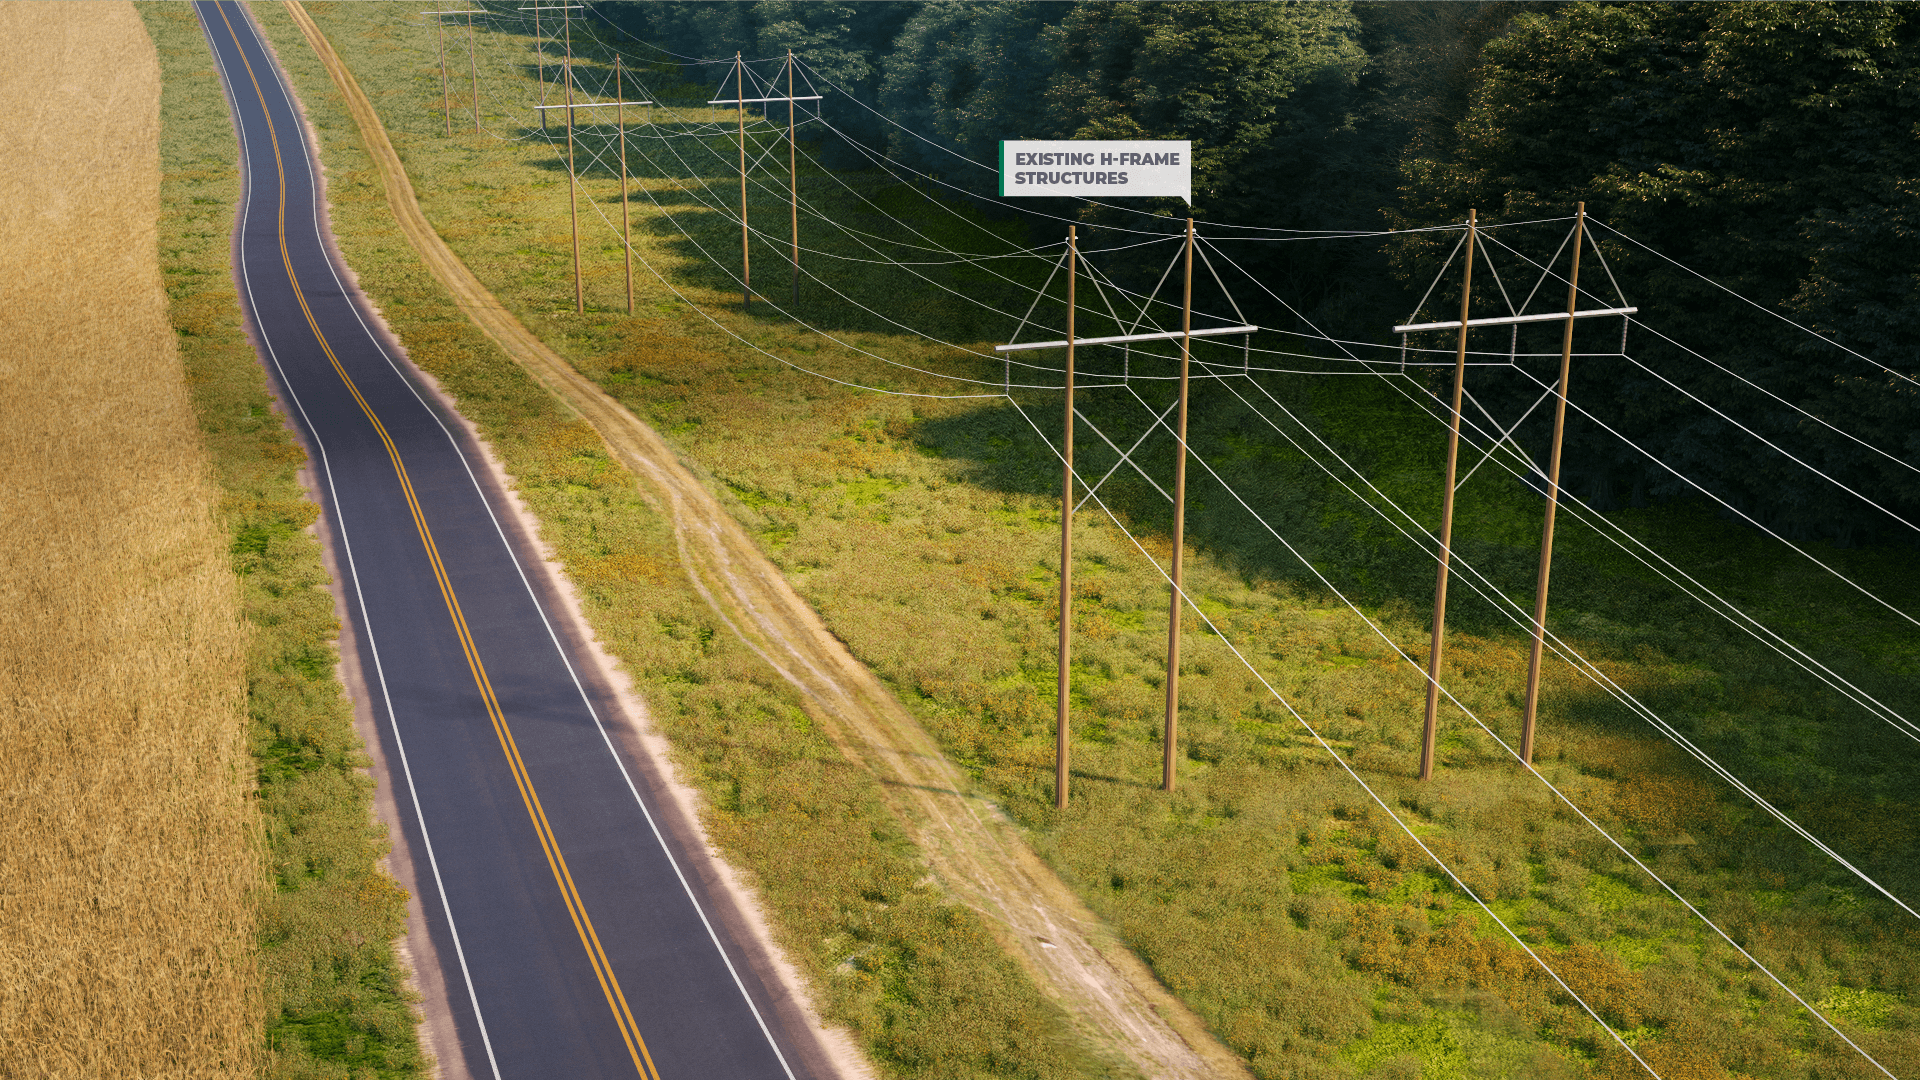 <h2>Step 1: Existing Conditions</h2>Two existing single-circuit 115 kV wood H-frame transmission lines.